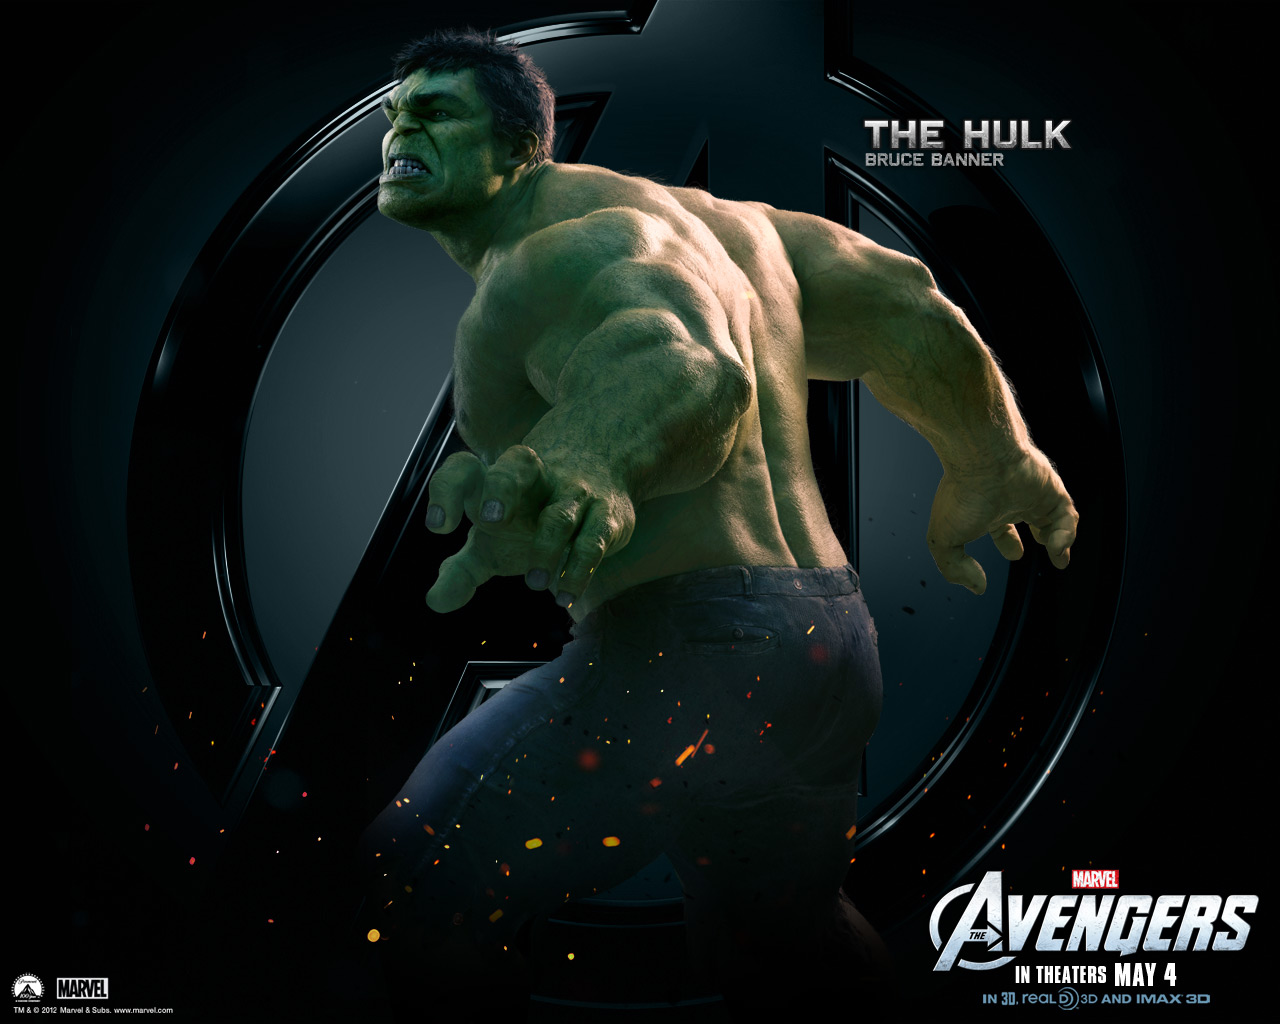 Os Vingadores imagens Hulk HD wallpaper and background fotografias 1280x1024